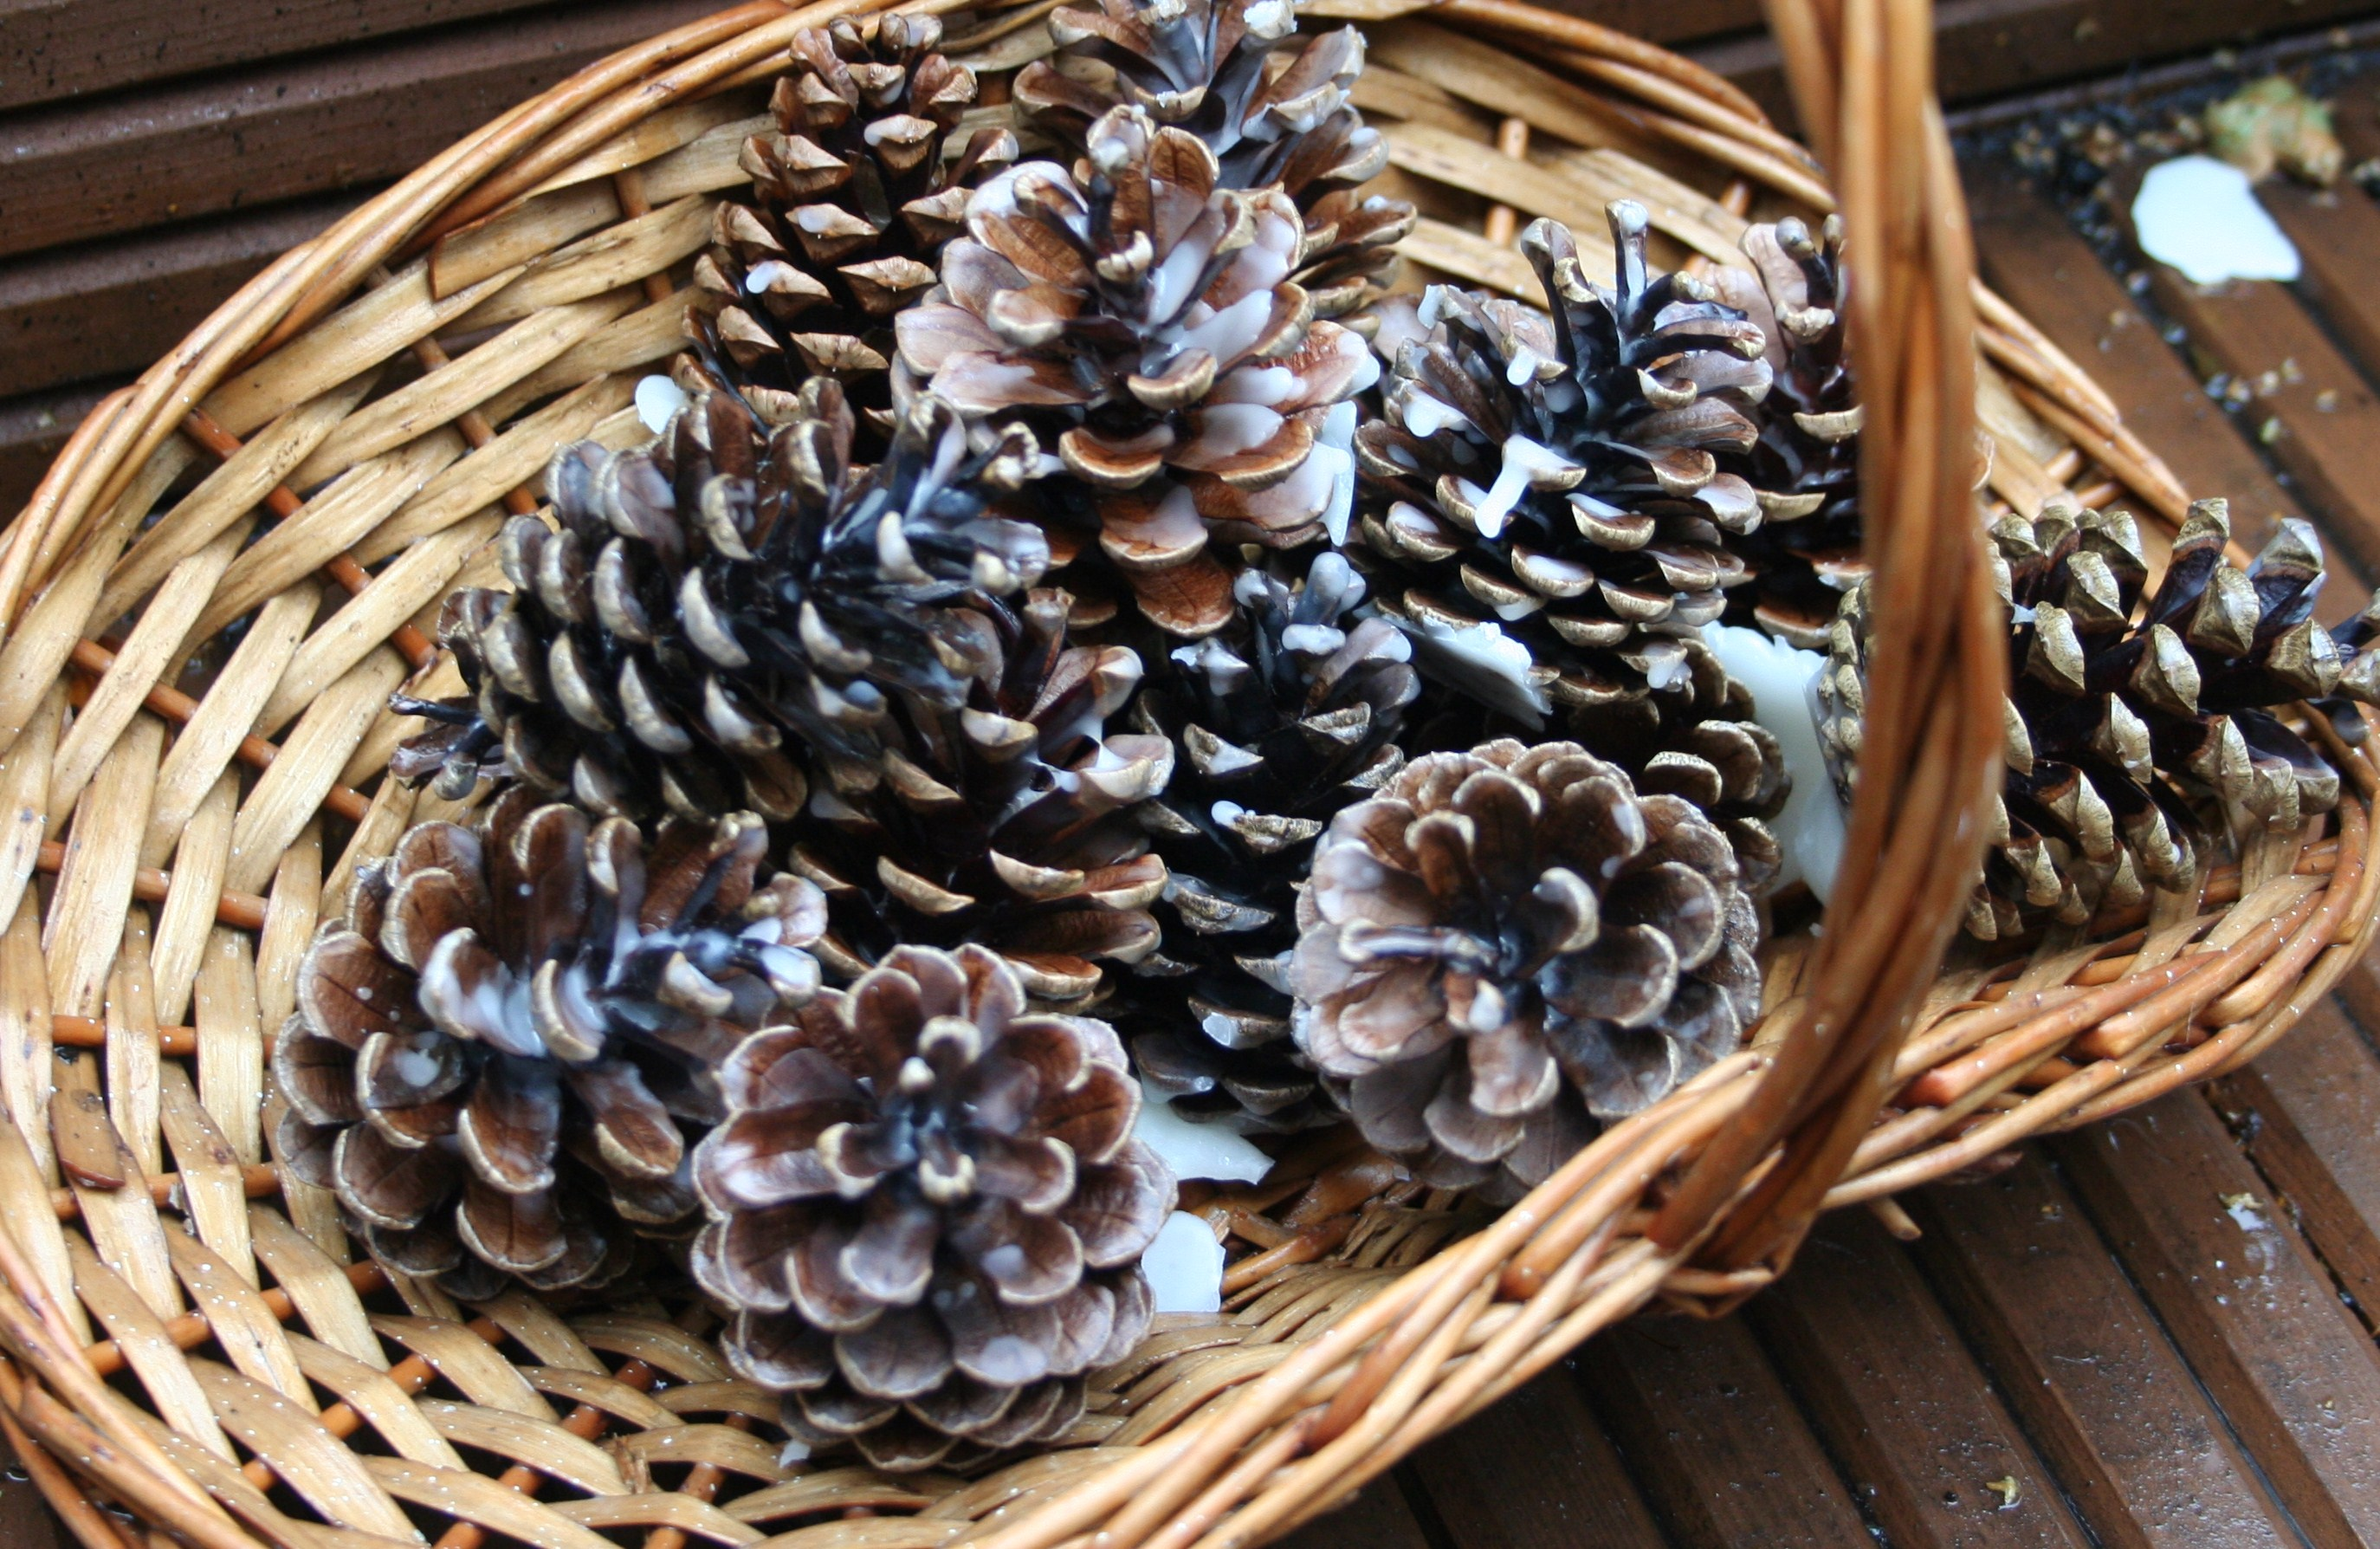 basket of pinecone firelighters